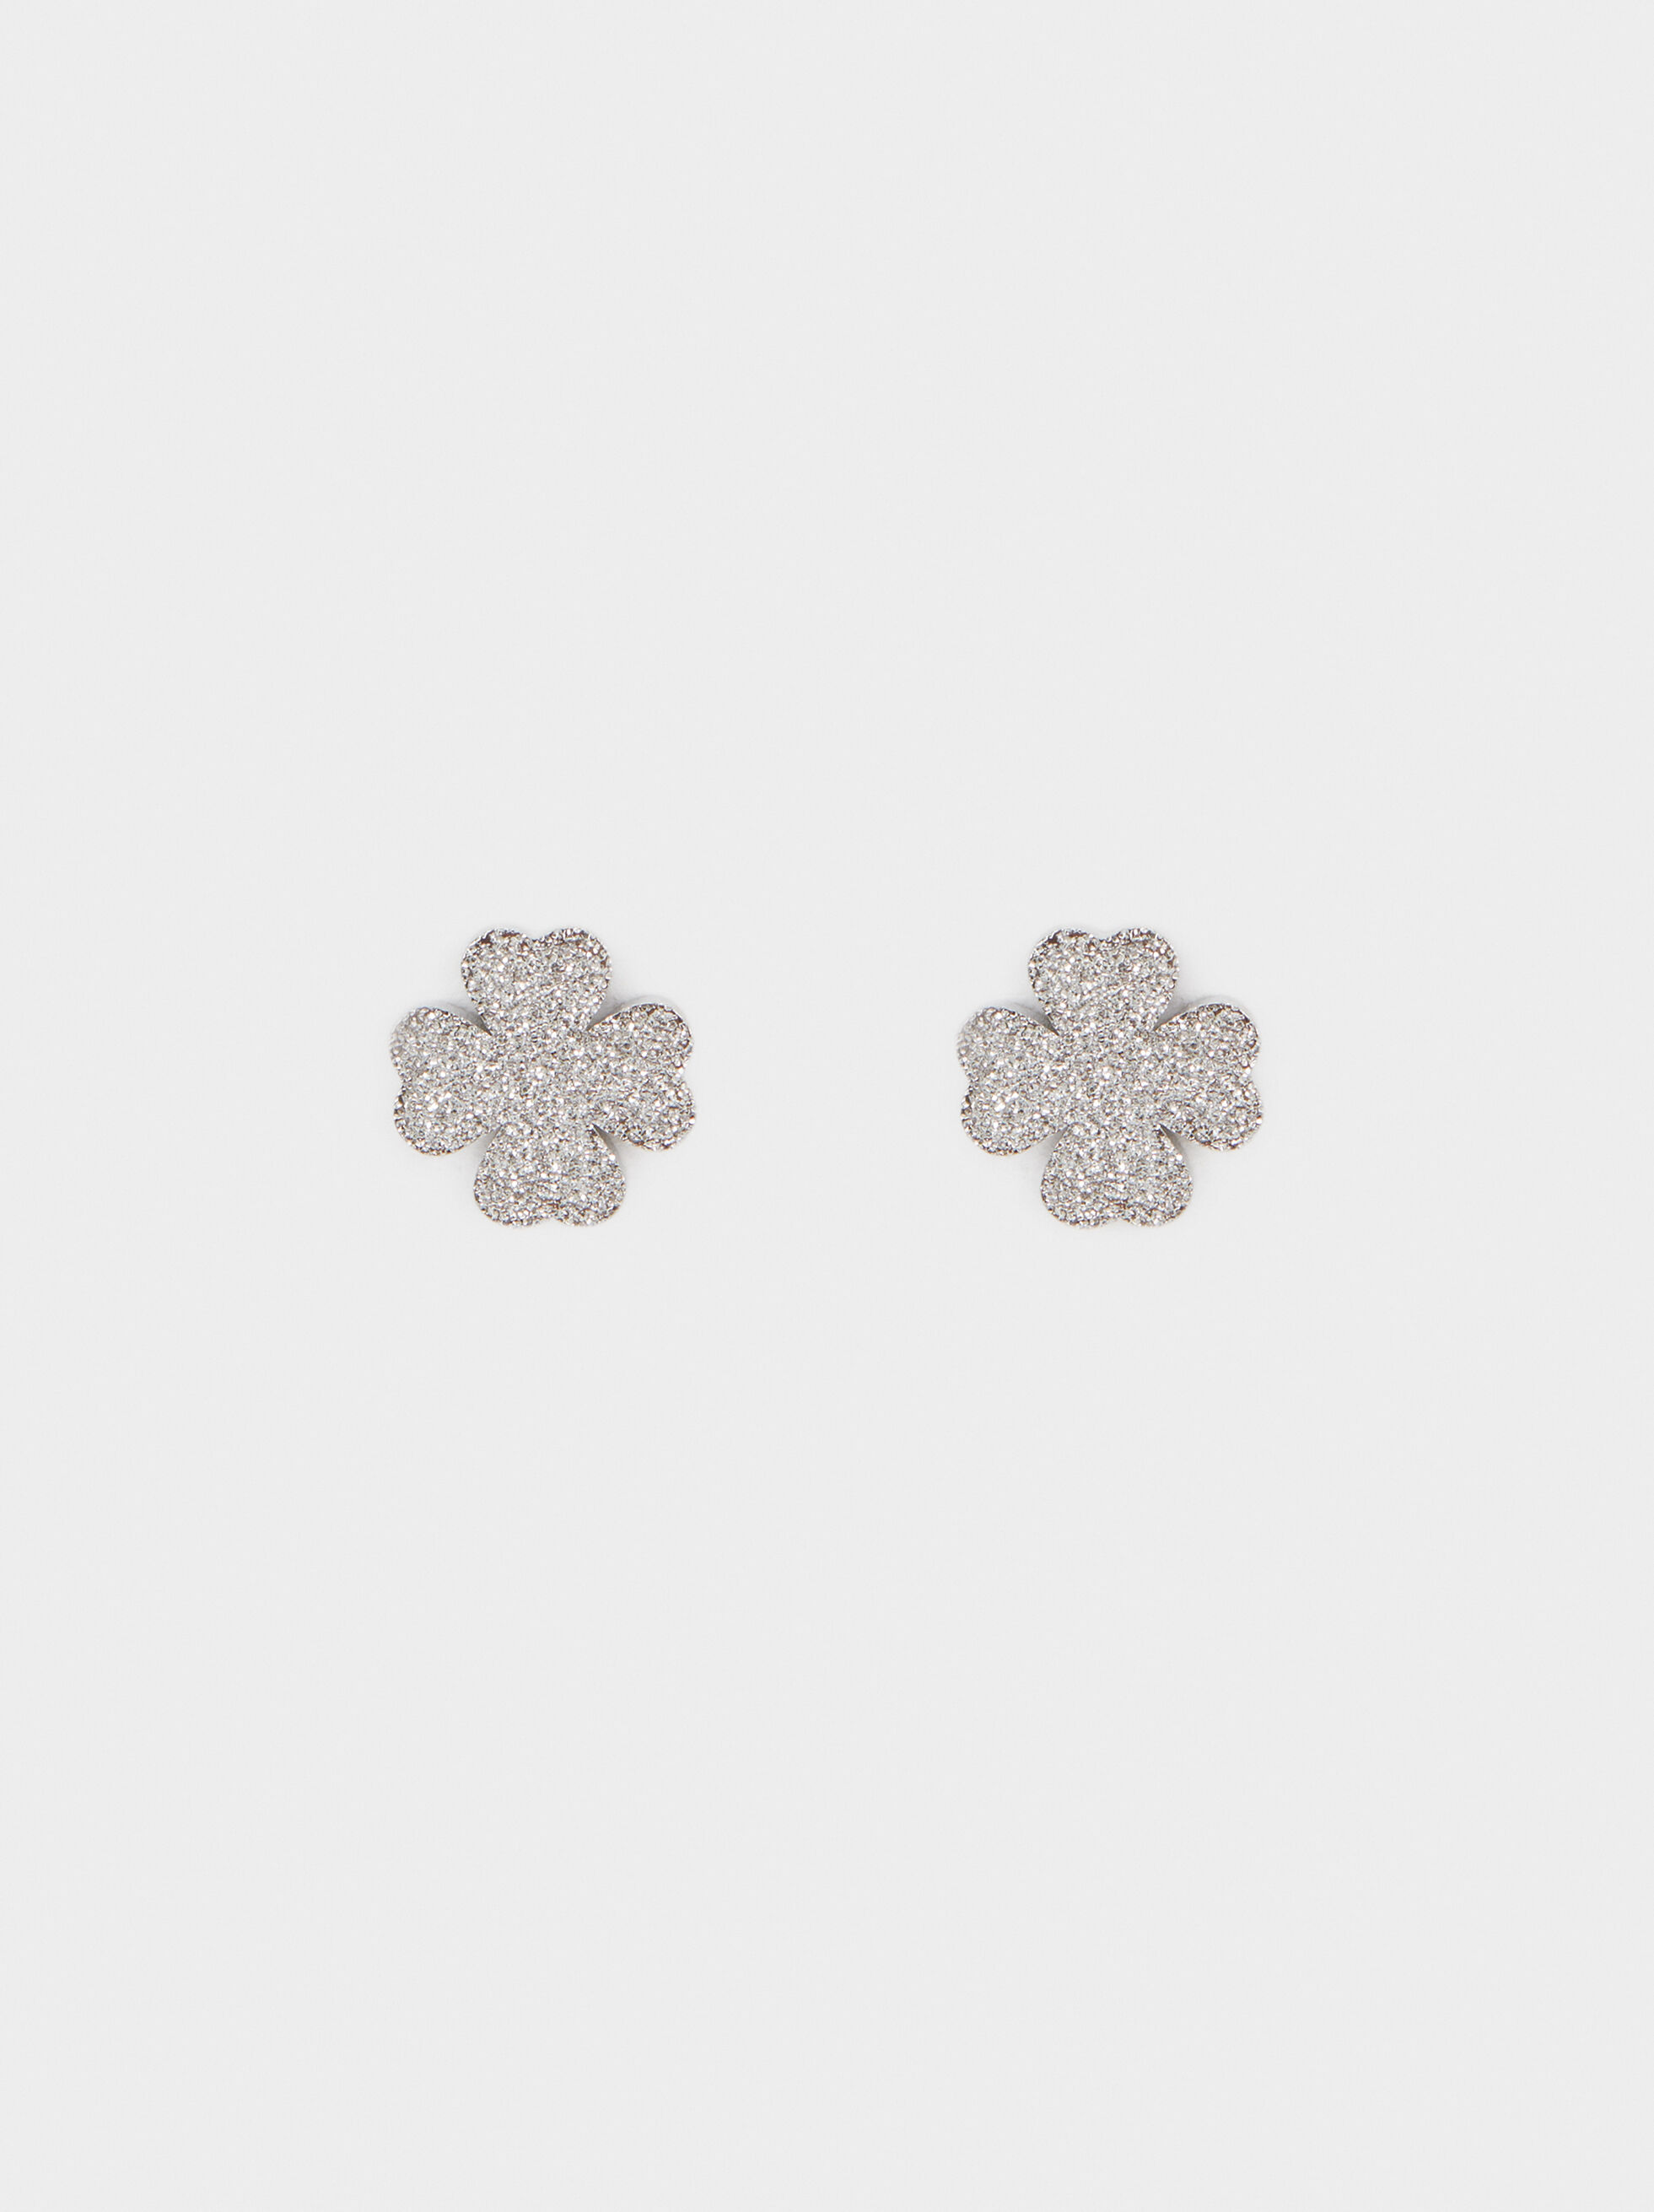 Short Silver Stainless Steel Earrings With Shamrock Detail, Silver, hi-res